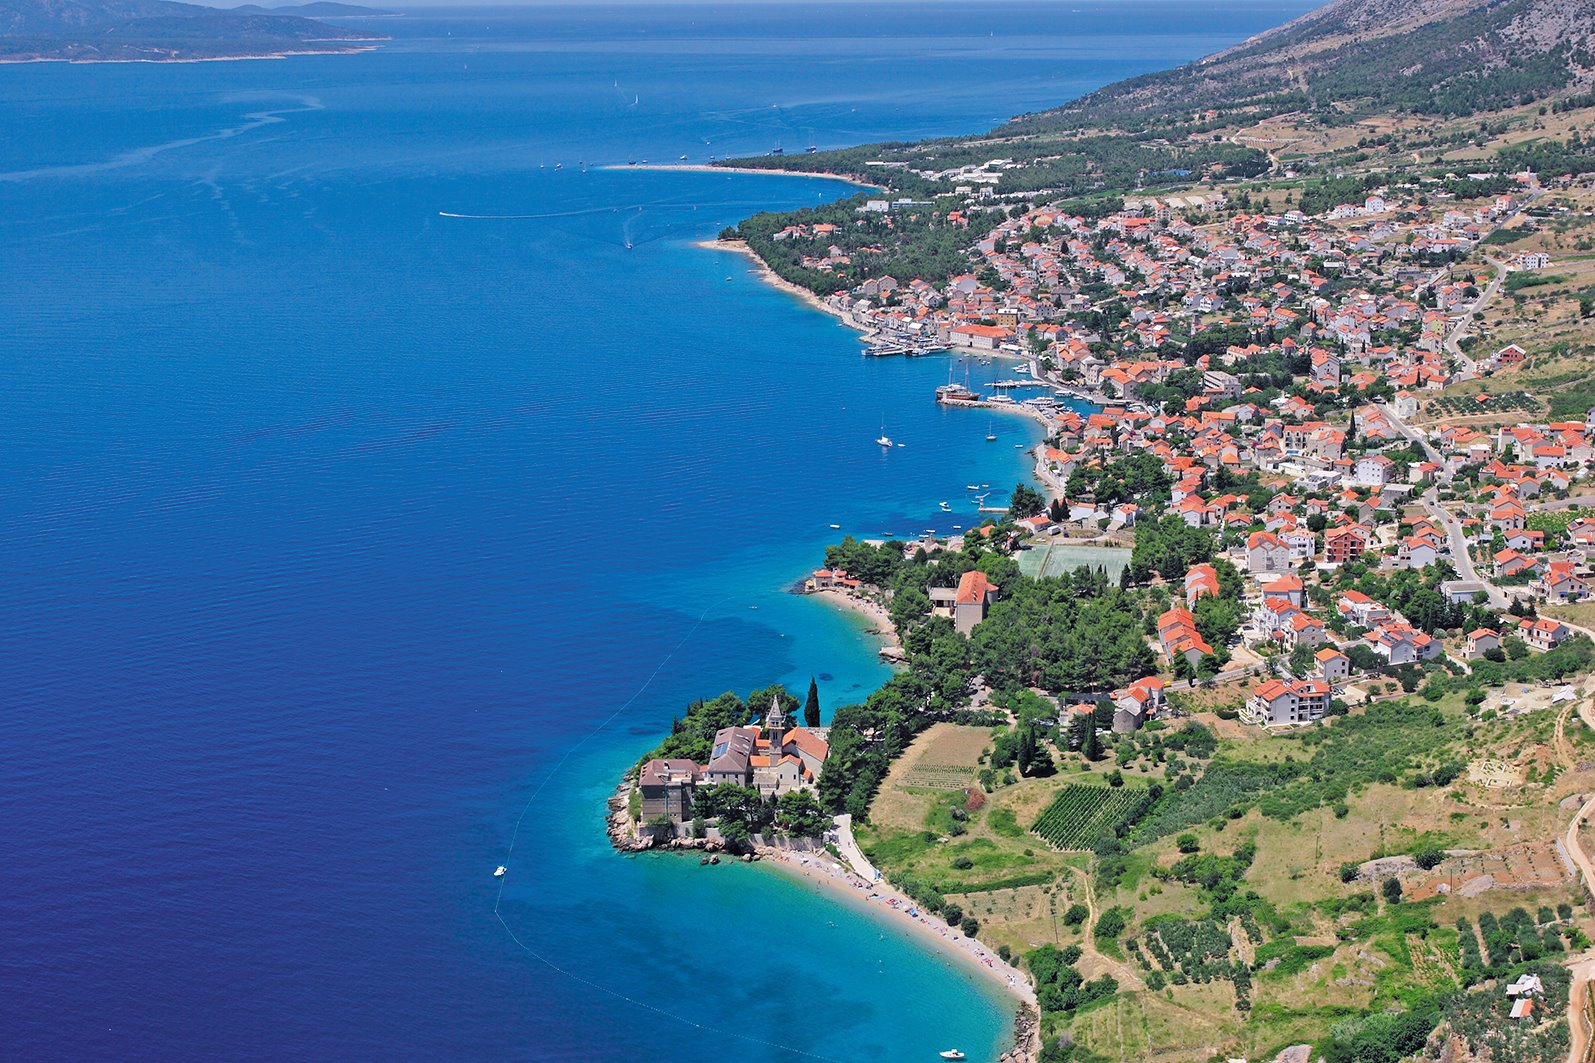 Brač (Brac), Croatia - Monterrasol small group tours to Brač (Brac), Croatia. Travel agency offers small group car tours to see Brač (Brac) in Croatia. Order small group tour to Brač (Brac) with departure date on request.